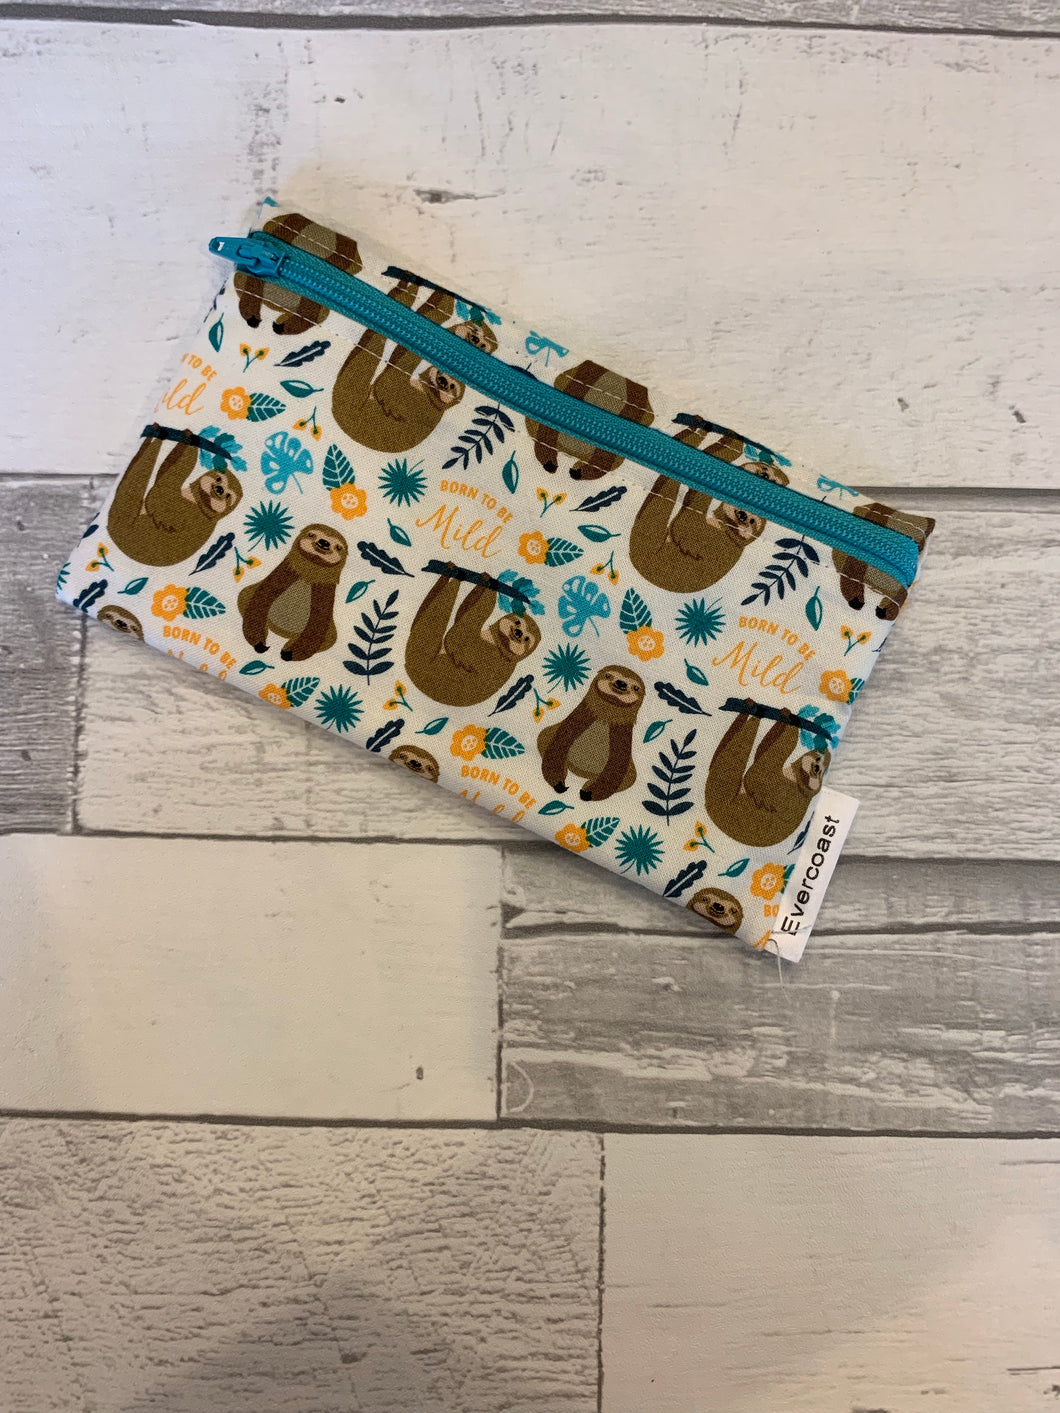 Born to be Mild Reusable Snack Bag